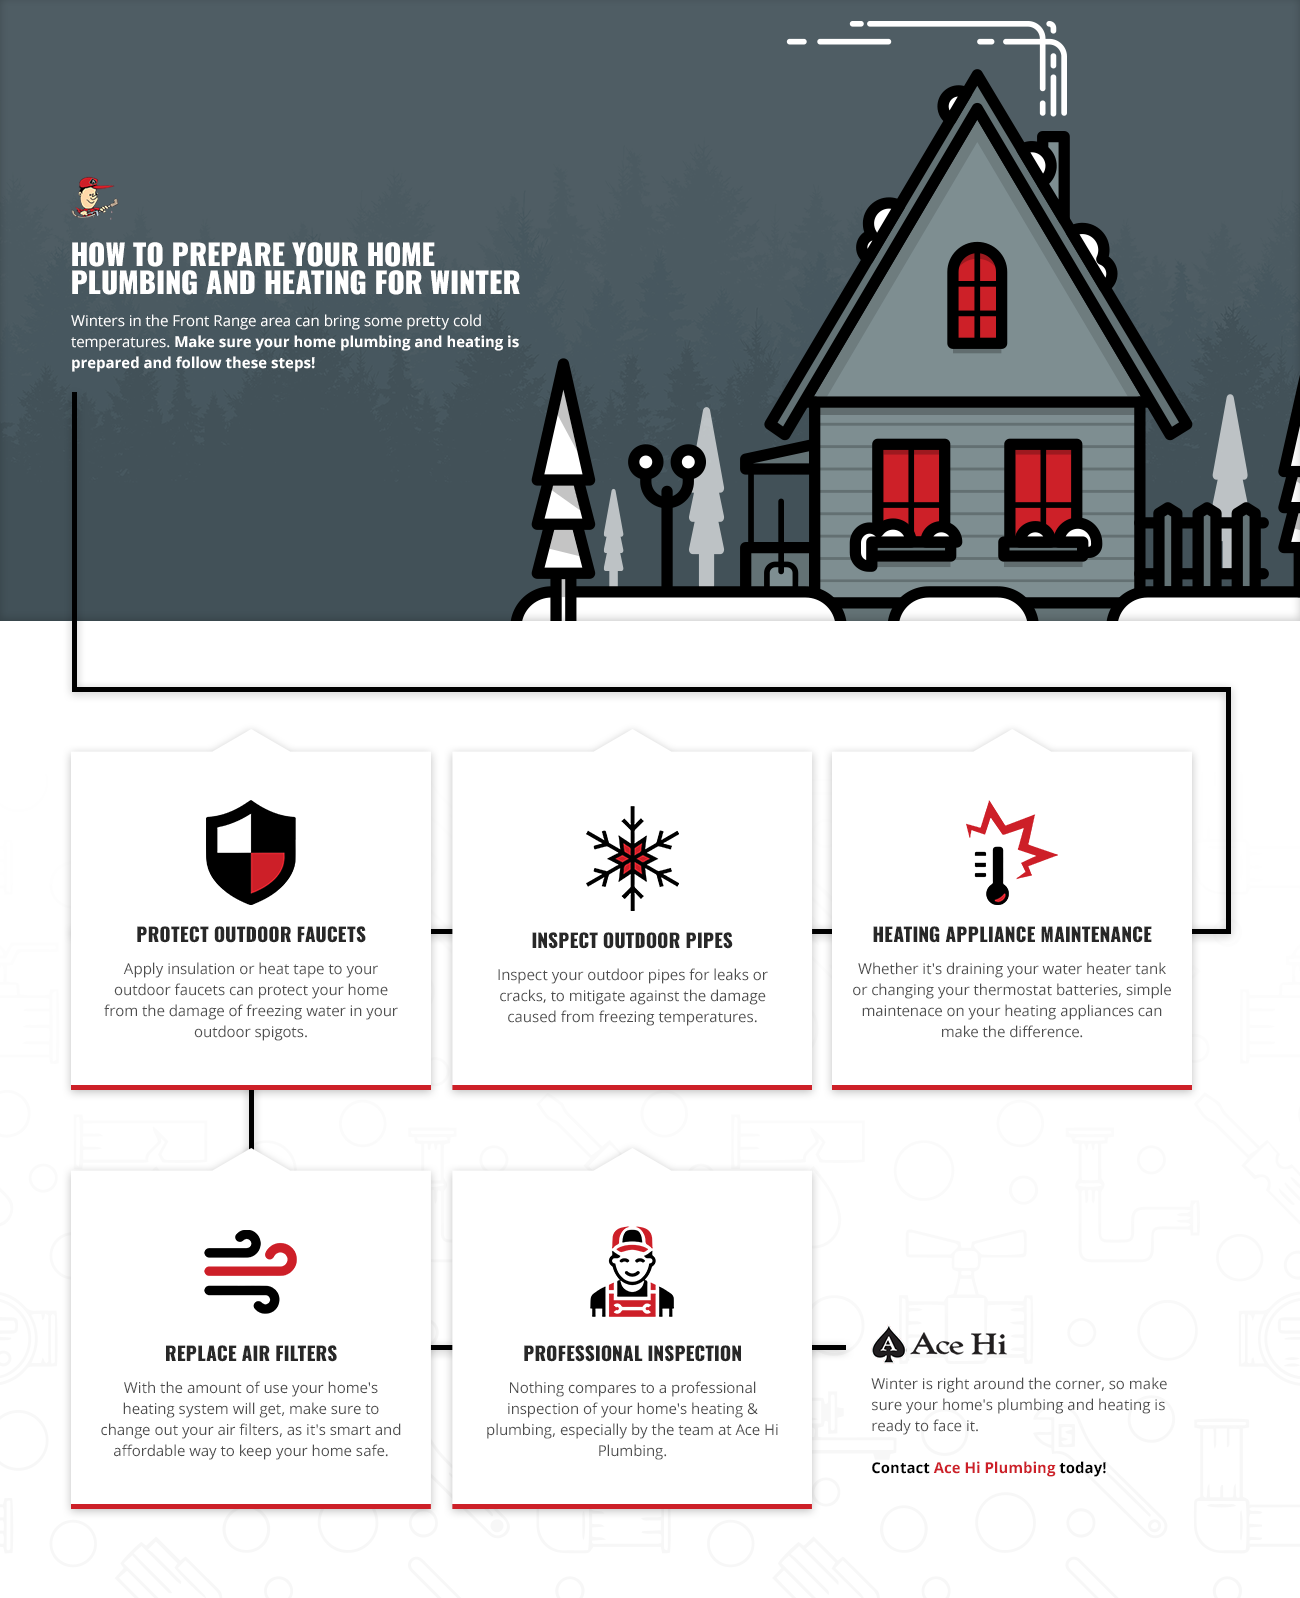 How to Prepare Your Home Plumbing and Heating for Winter - infographic